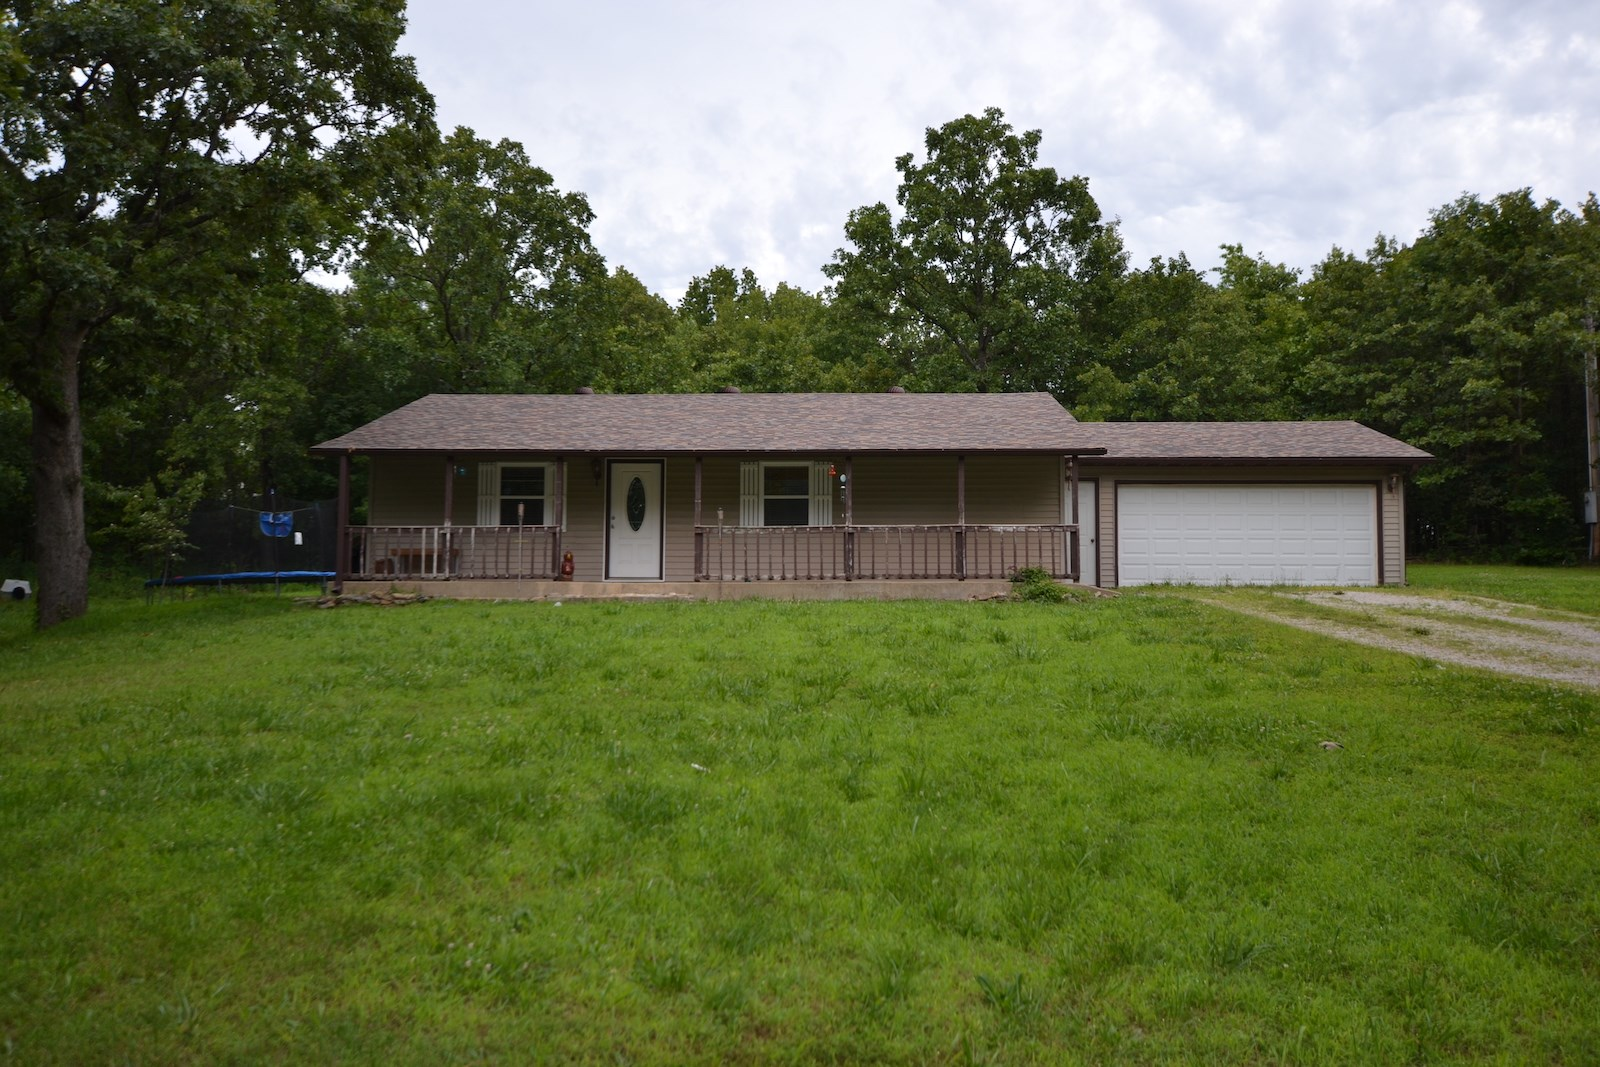 Home for Sale on Wooded Property